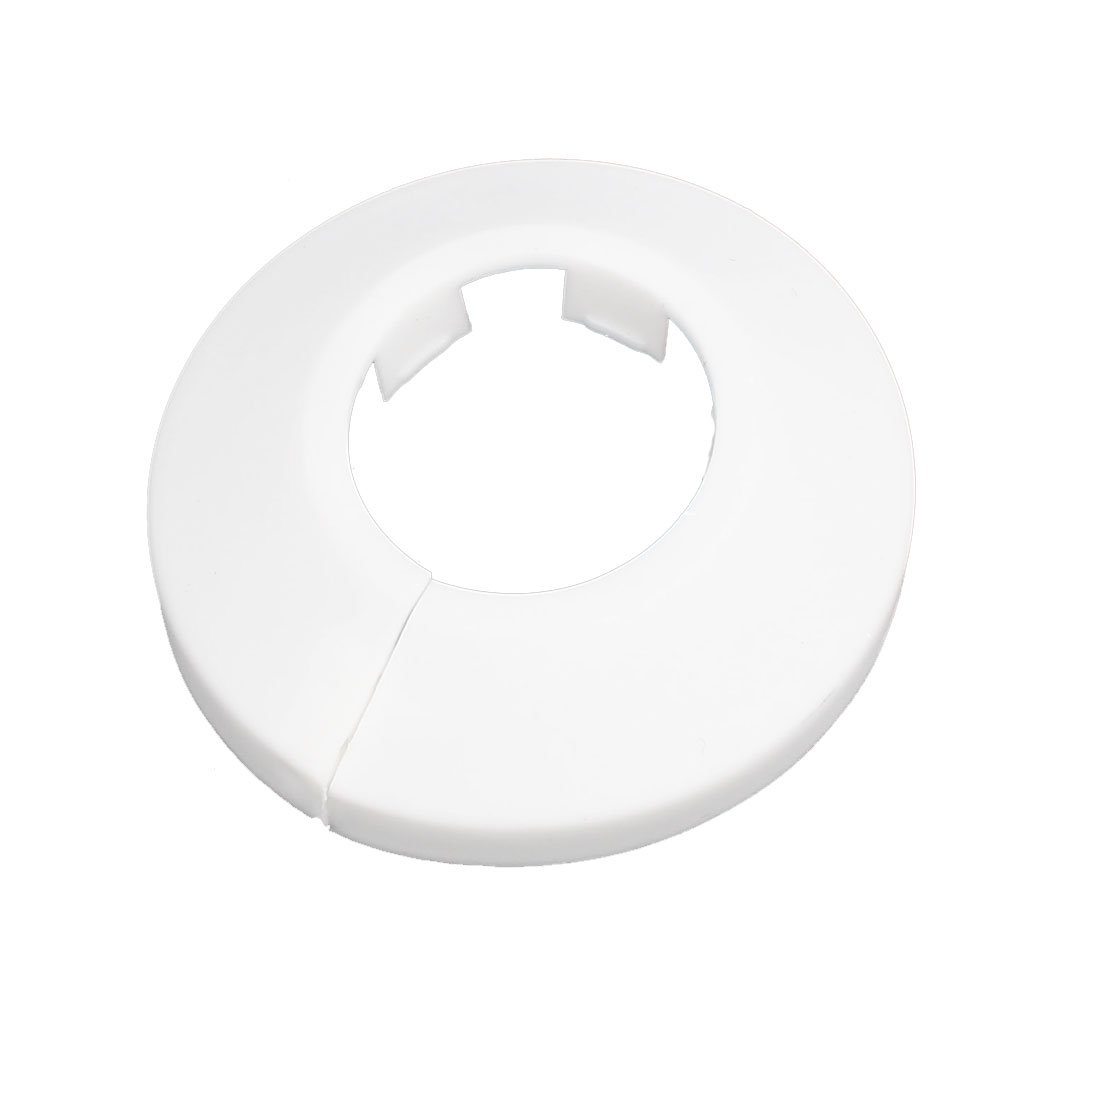 uxcell 25mm Plastic Wall Flange Radiator Water Pipe Cover Collar White